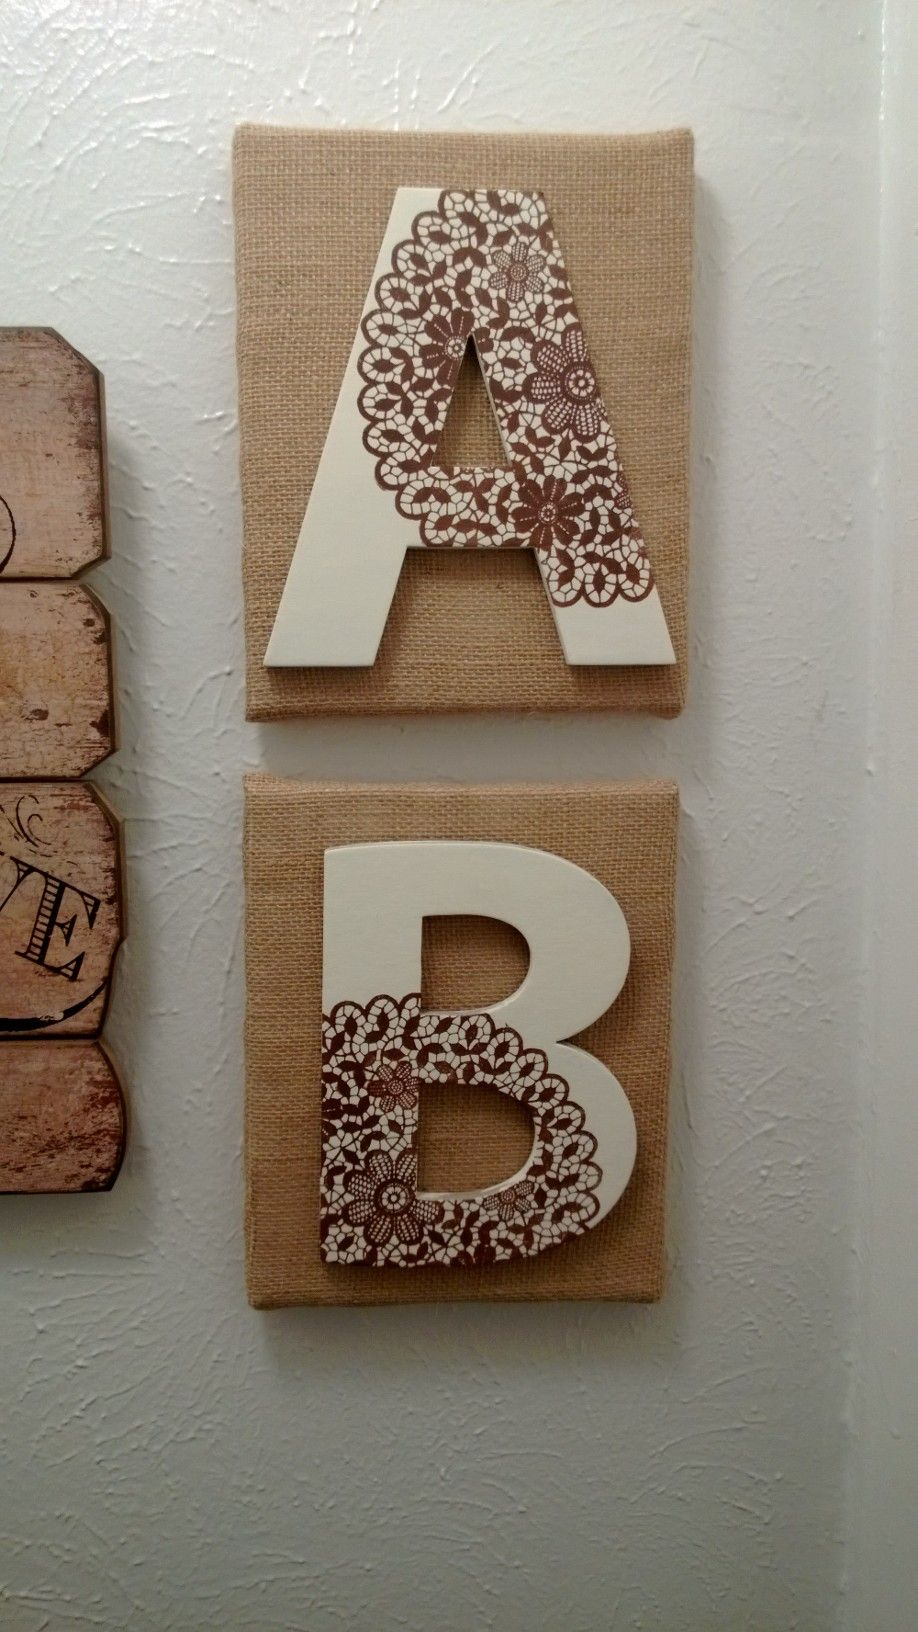 Pin By Dawn Jones On Decorating Ideas Diy Letters Burlap Crafts Decorative Letters